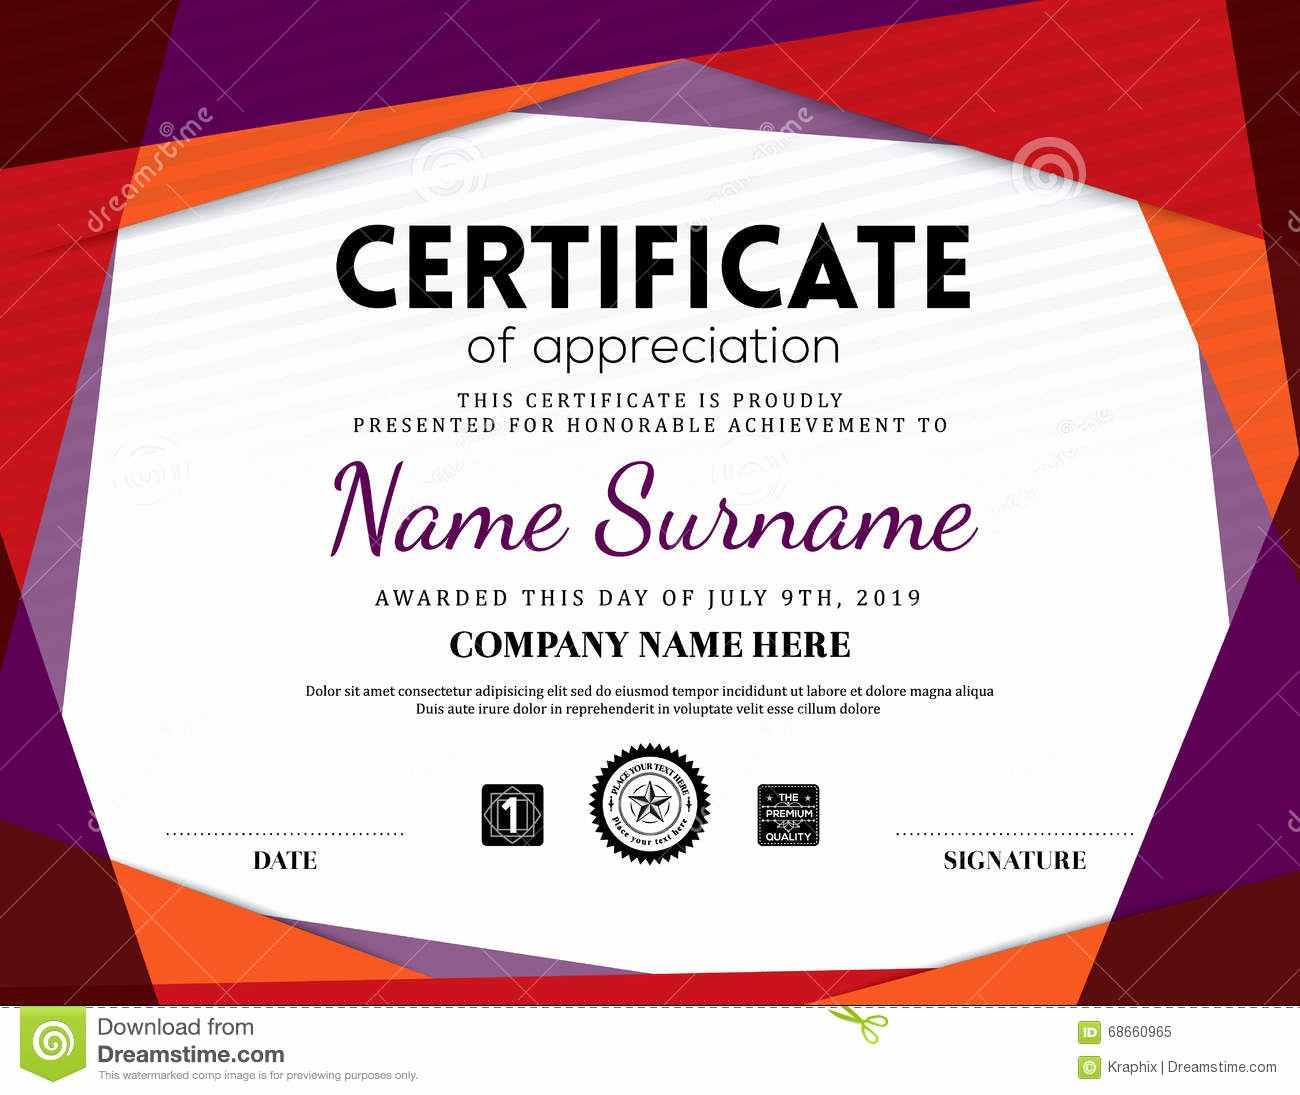 How to Design A Certificate Beautiful Modern Certificate Triangle Background Frame Design Stock